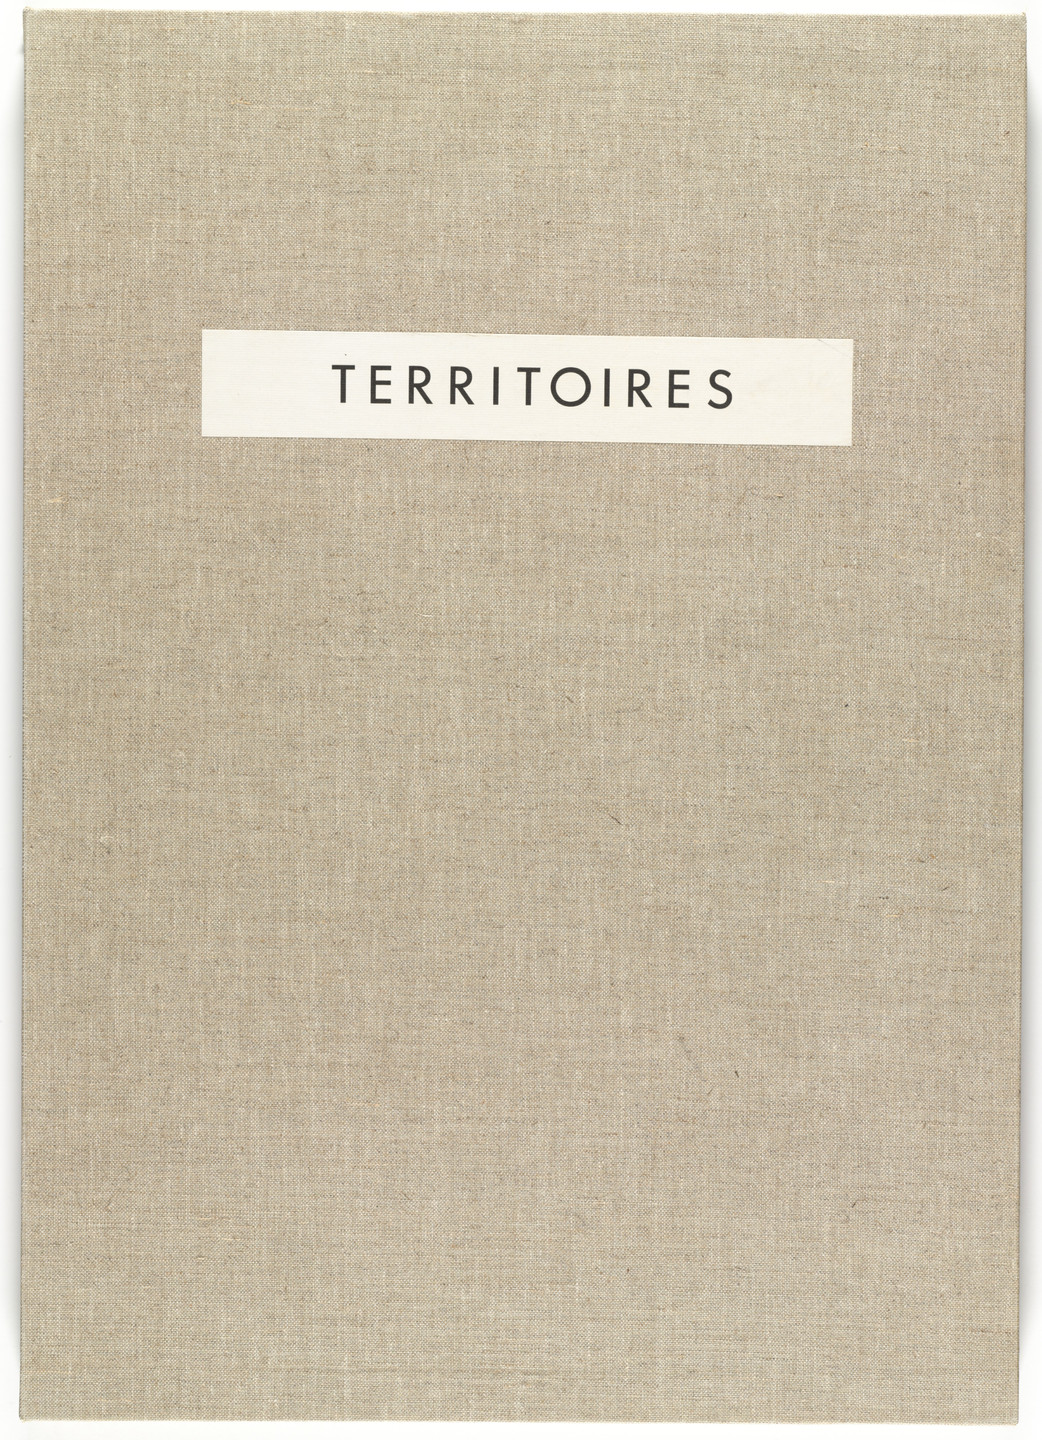 Jean Dubuffet. Territories (Territoires) from Phenomena (Les Phénomènes). 1959, prints executed 1958-59